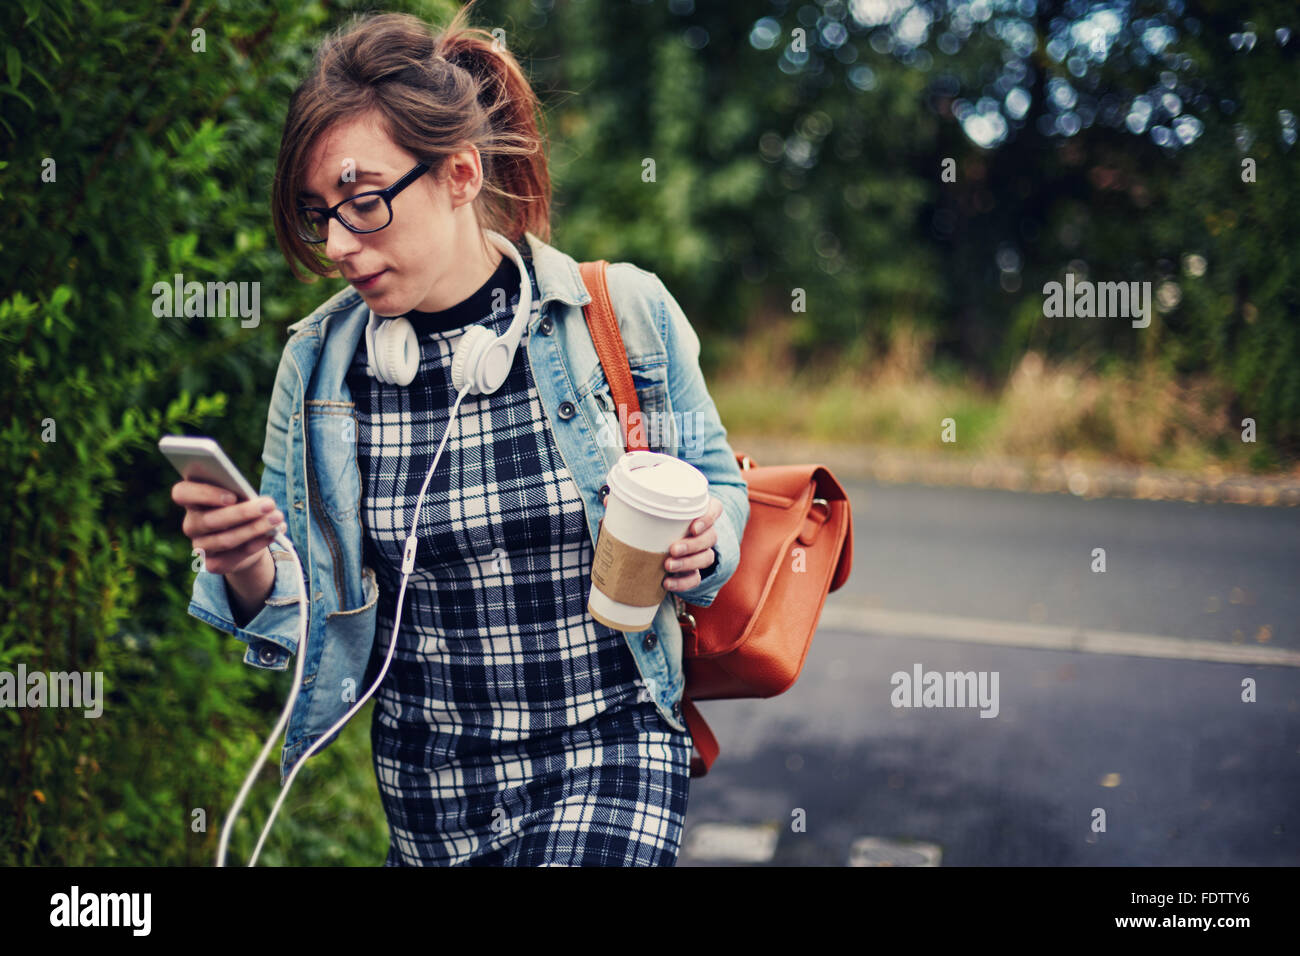 Young female student walking along using her phone and holding a coffee. - Stock Image